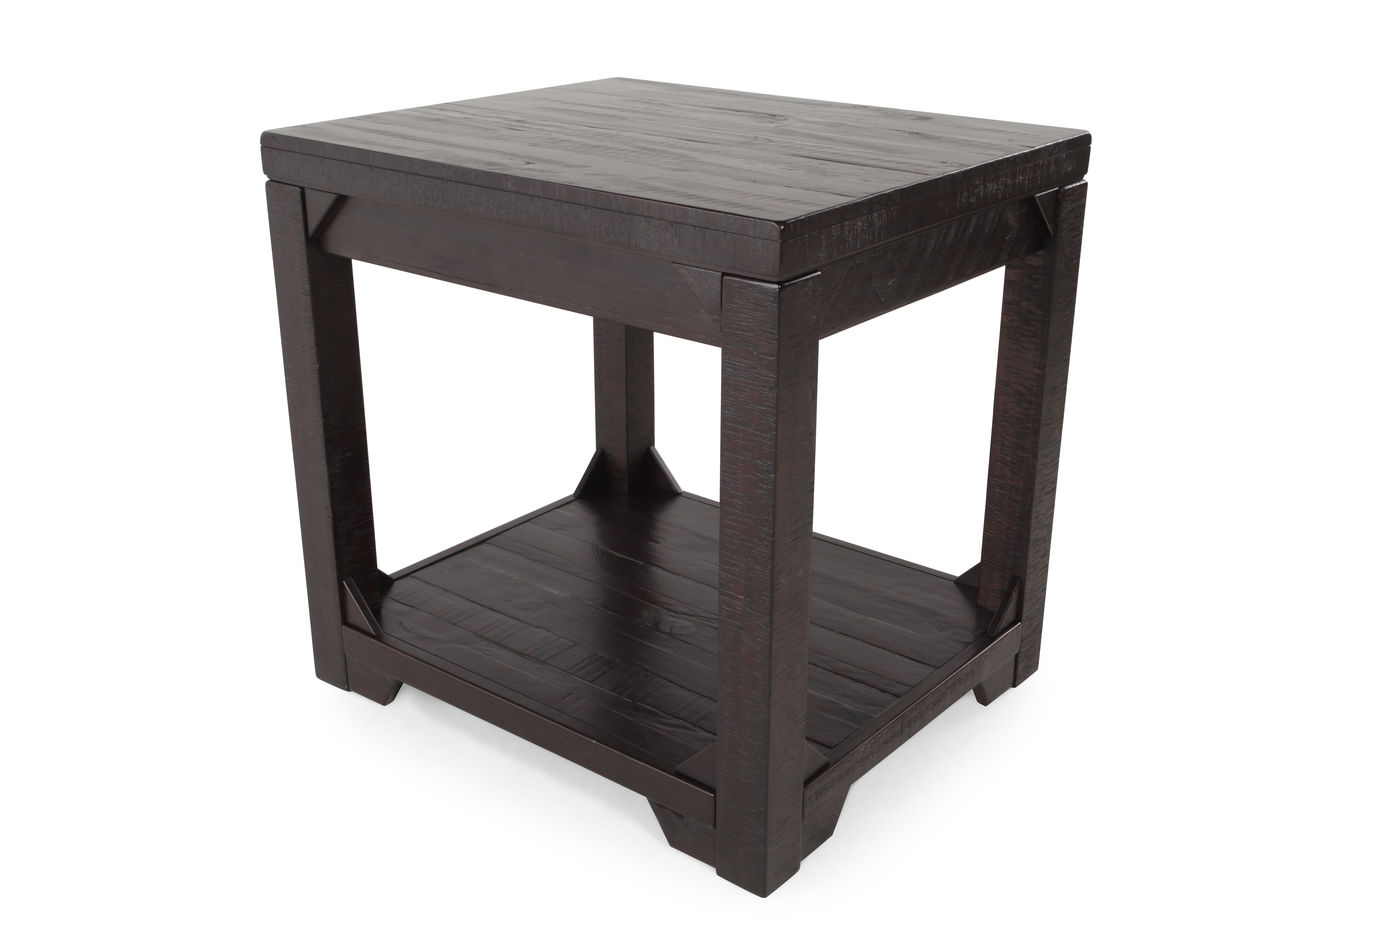 solid pine distressed end table dark rum mathis brothers furniture ash wood plans ikea kitchen chairs tall skinny tables chest gold occasional ashley sofa wooden dog crate lace